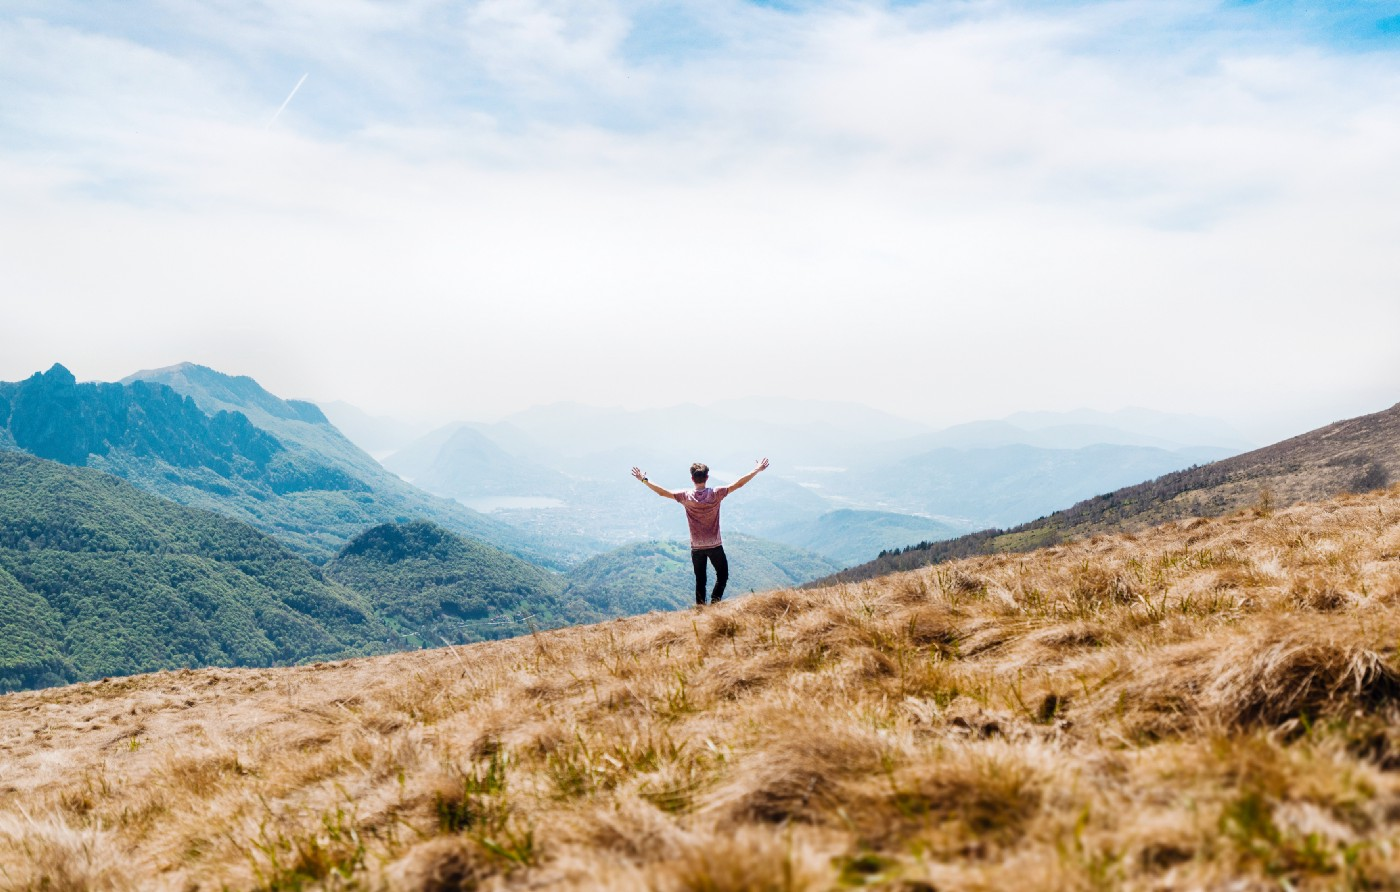 A person celebrating on a mountain top.